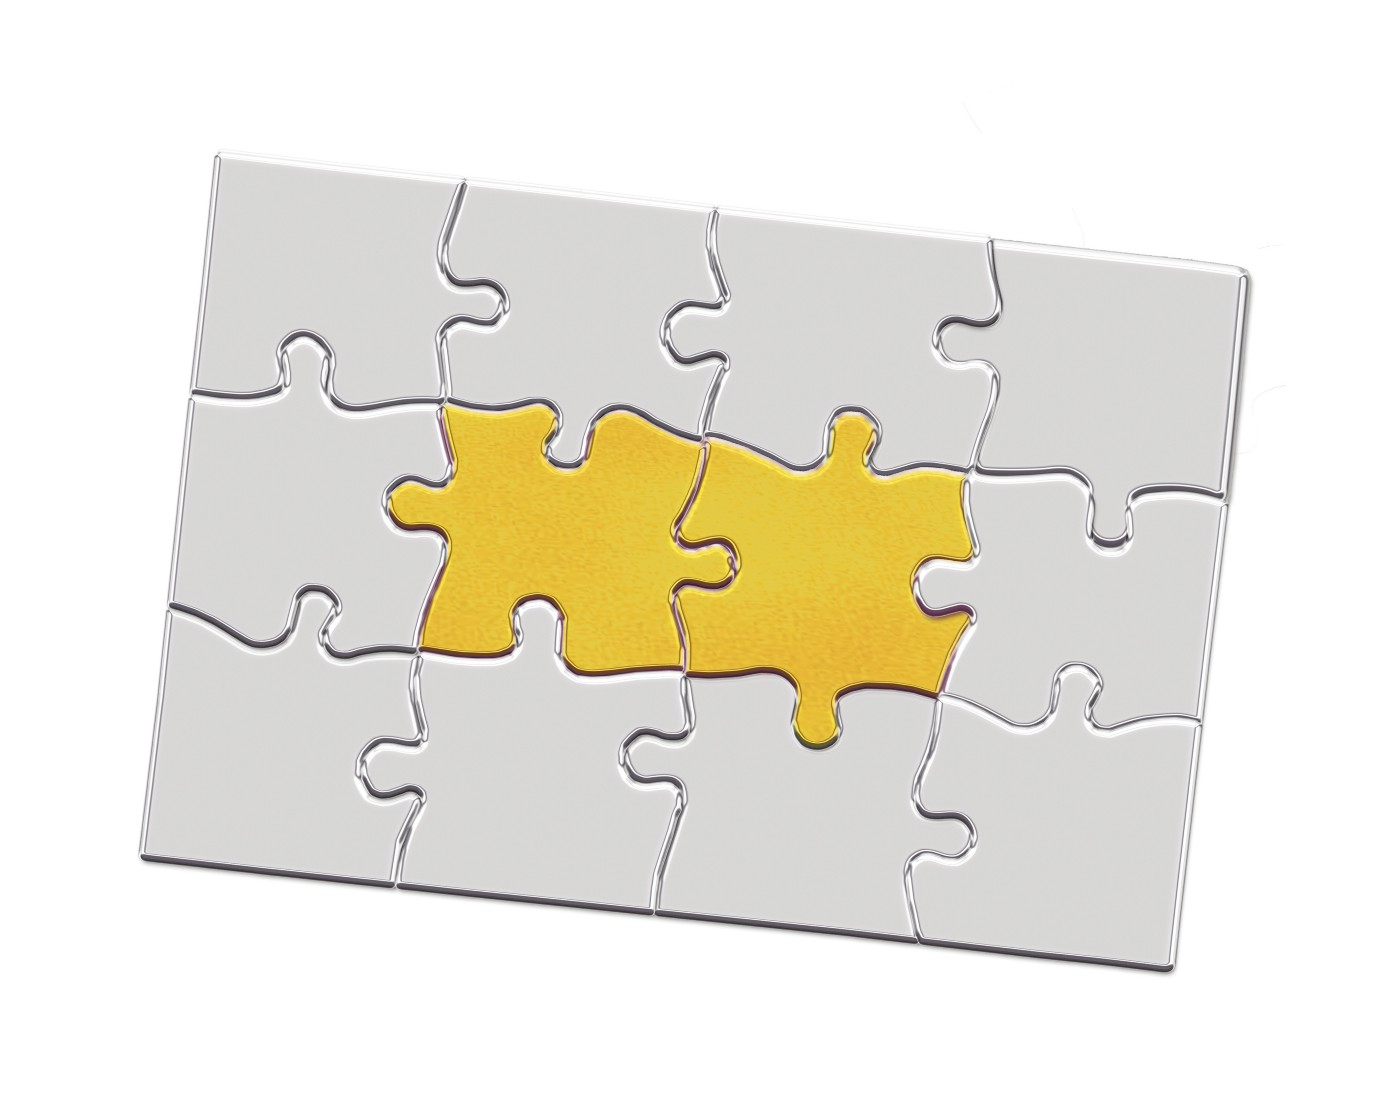 Metal jigsaw puzzle with interlocking pieces